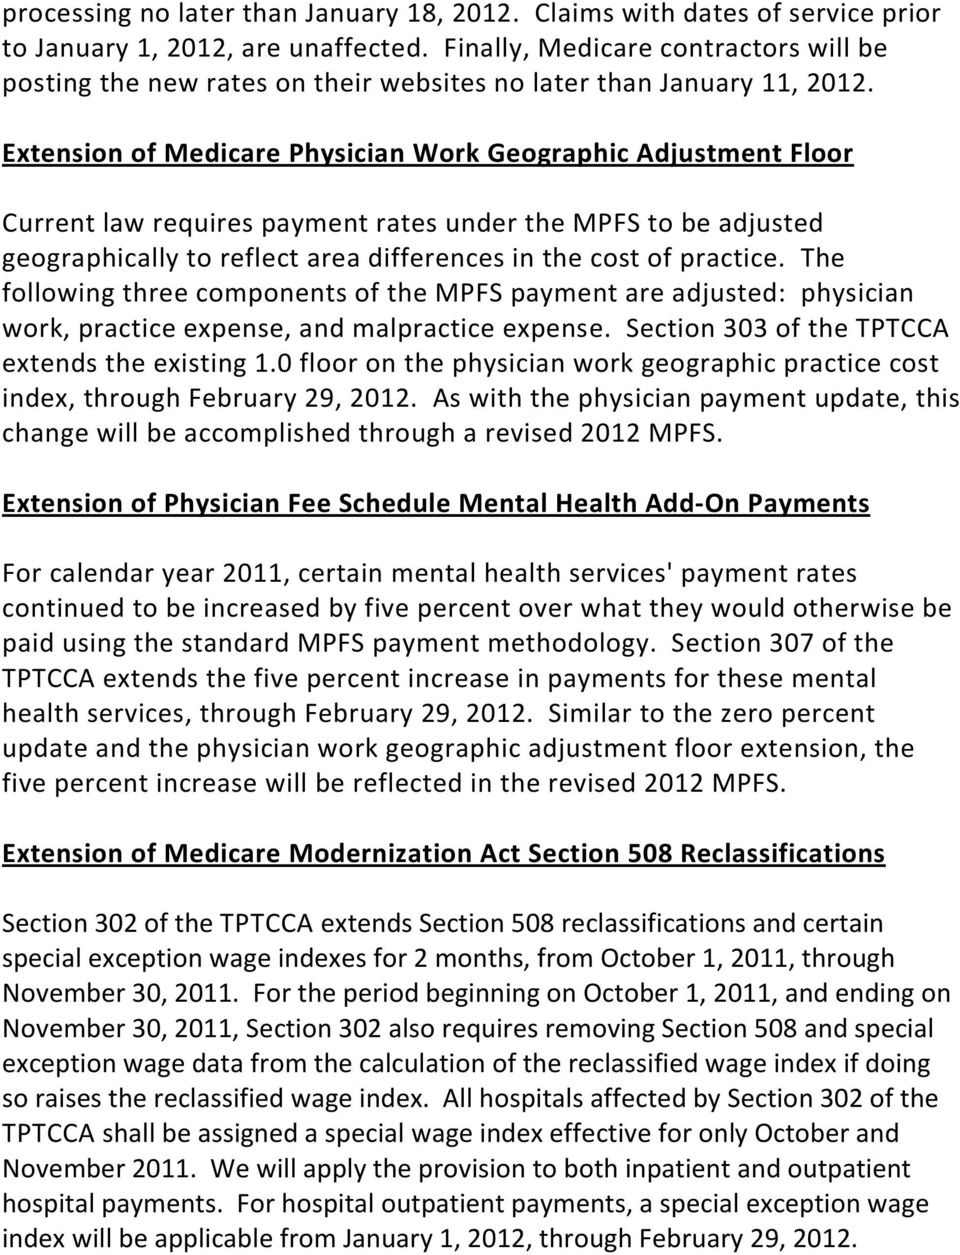 Extension of Medicare Physician Work Geographic Adjustment Floor Current law requires payment rates under the MPFS to be adjusted geographically to reflect area differences in the cost of practice.